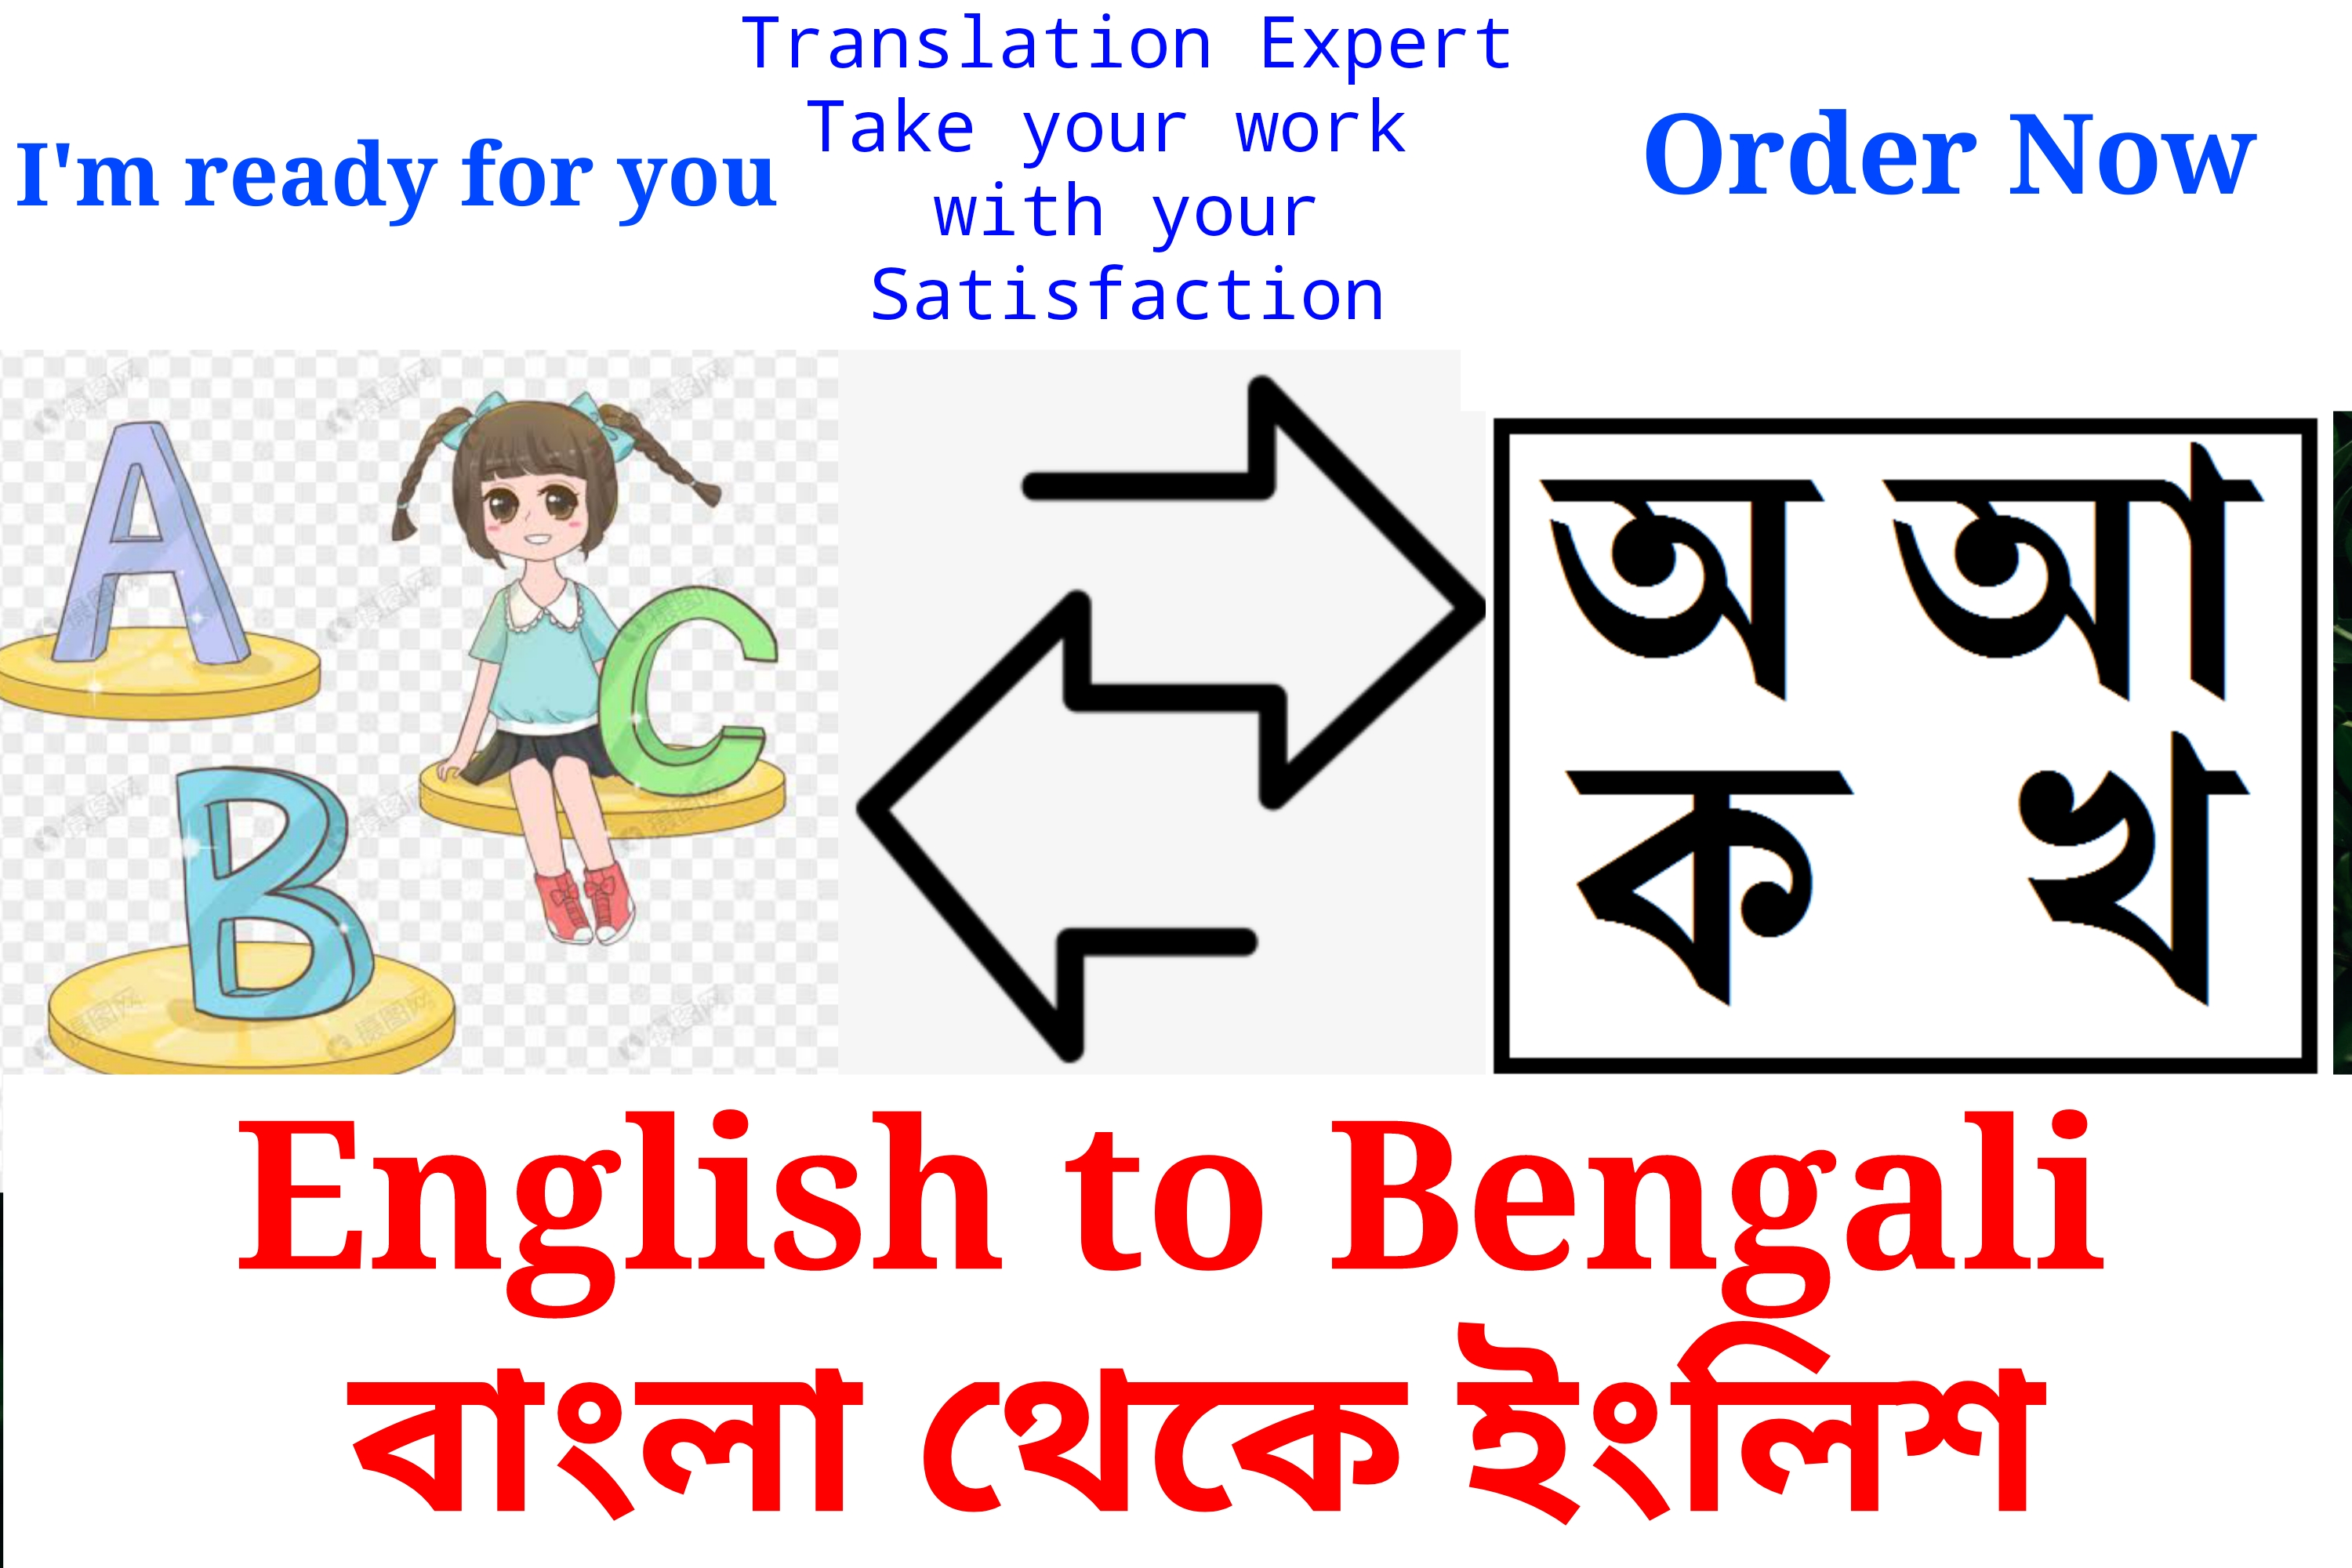 Going to provide you a Premium translation from English to Bengali & Bengali to English